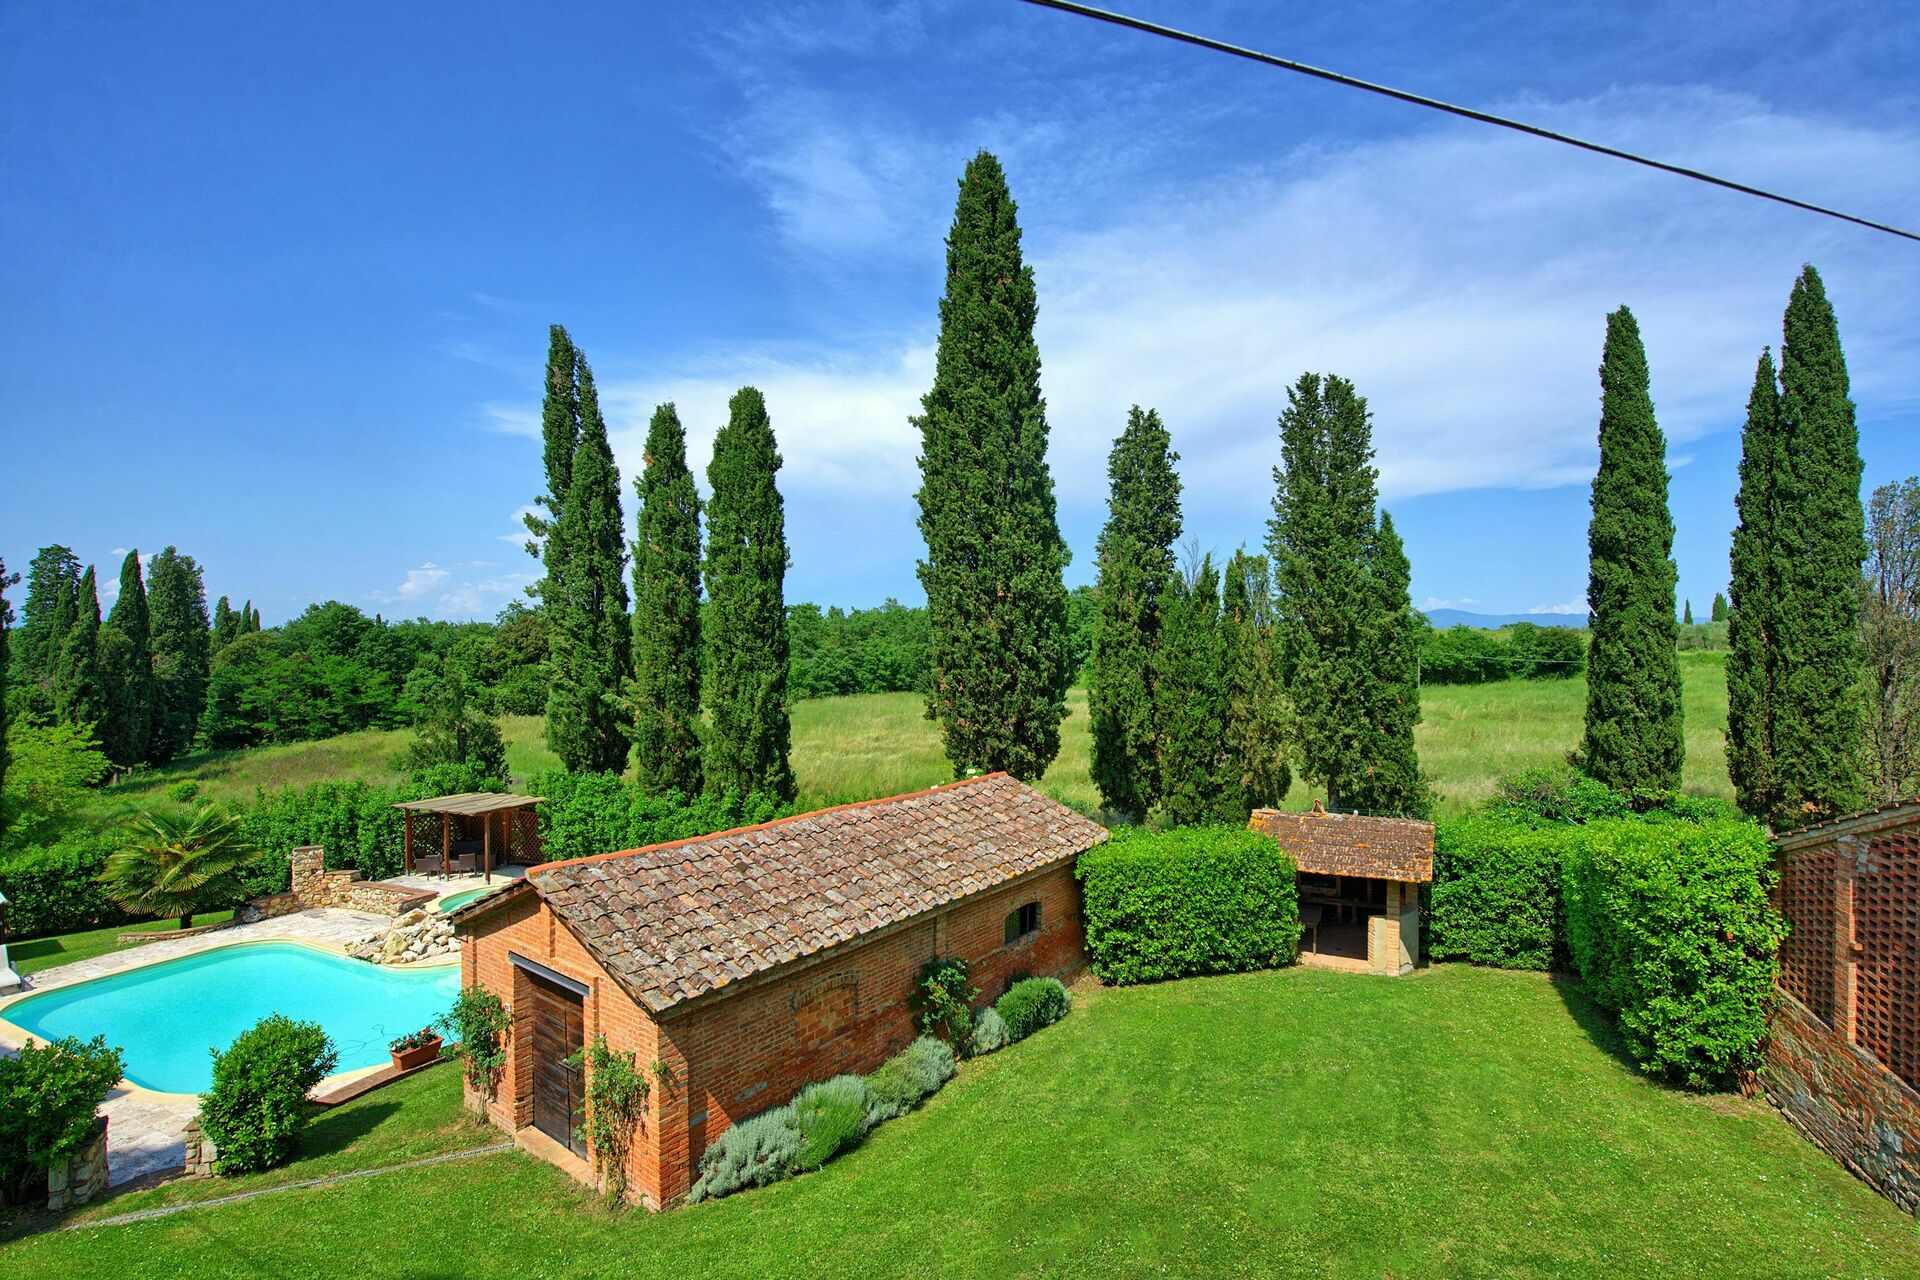 Villas Near Siena Italy villa poggigialli, holiday country villa rental in sinalunga